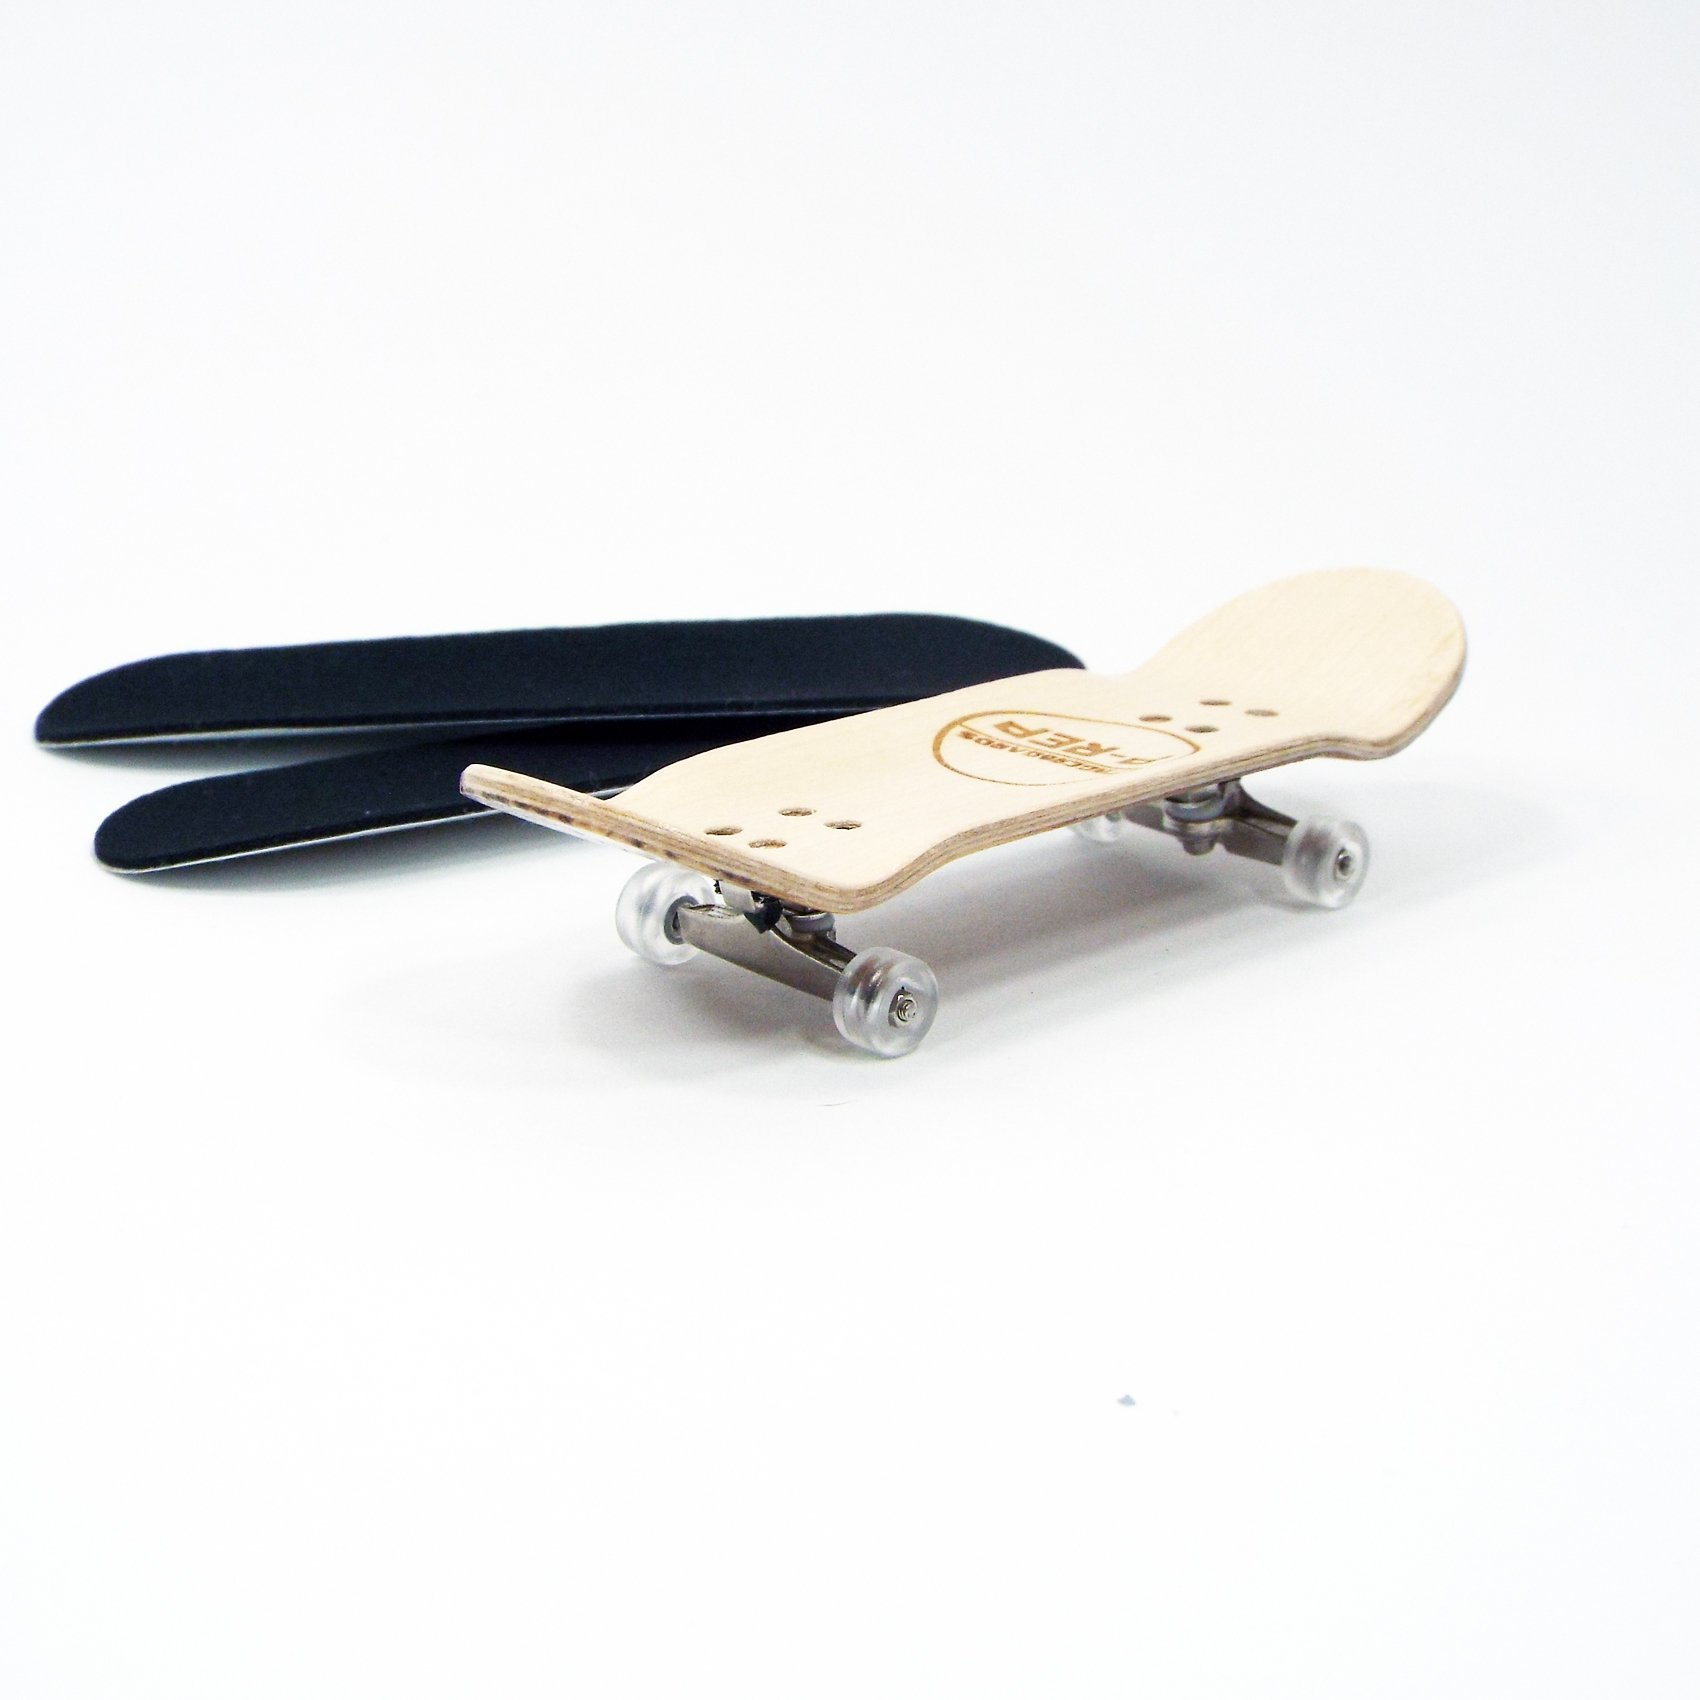 Peoples Republic P-REP 30mm Basic Complete Fingerboard Kit with Liquid Hardware - Zebra by Peoples Republic (Image #4)